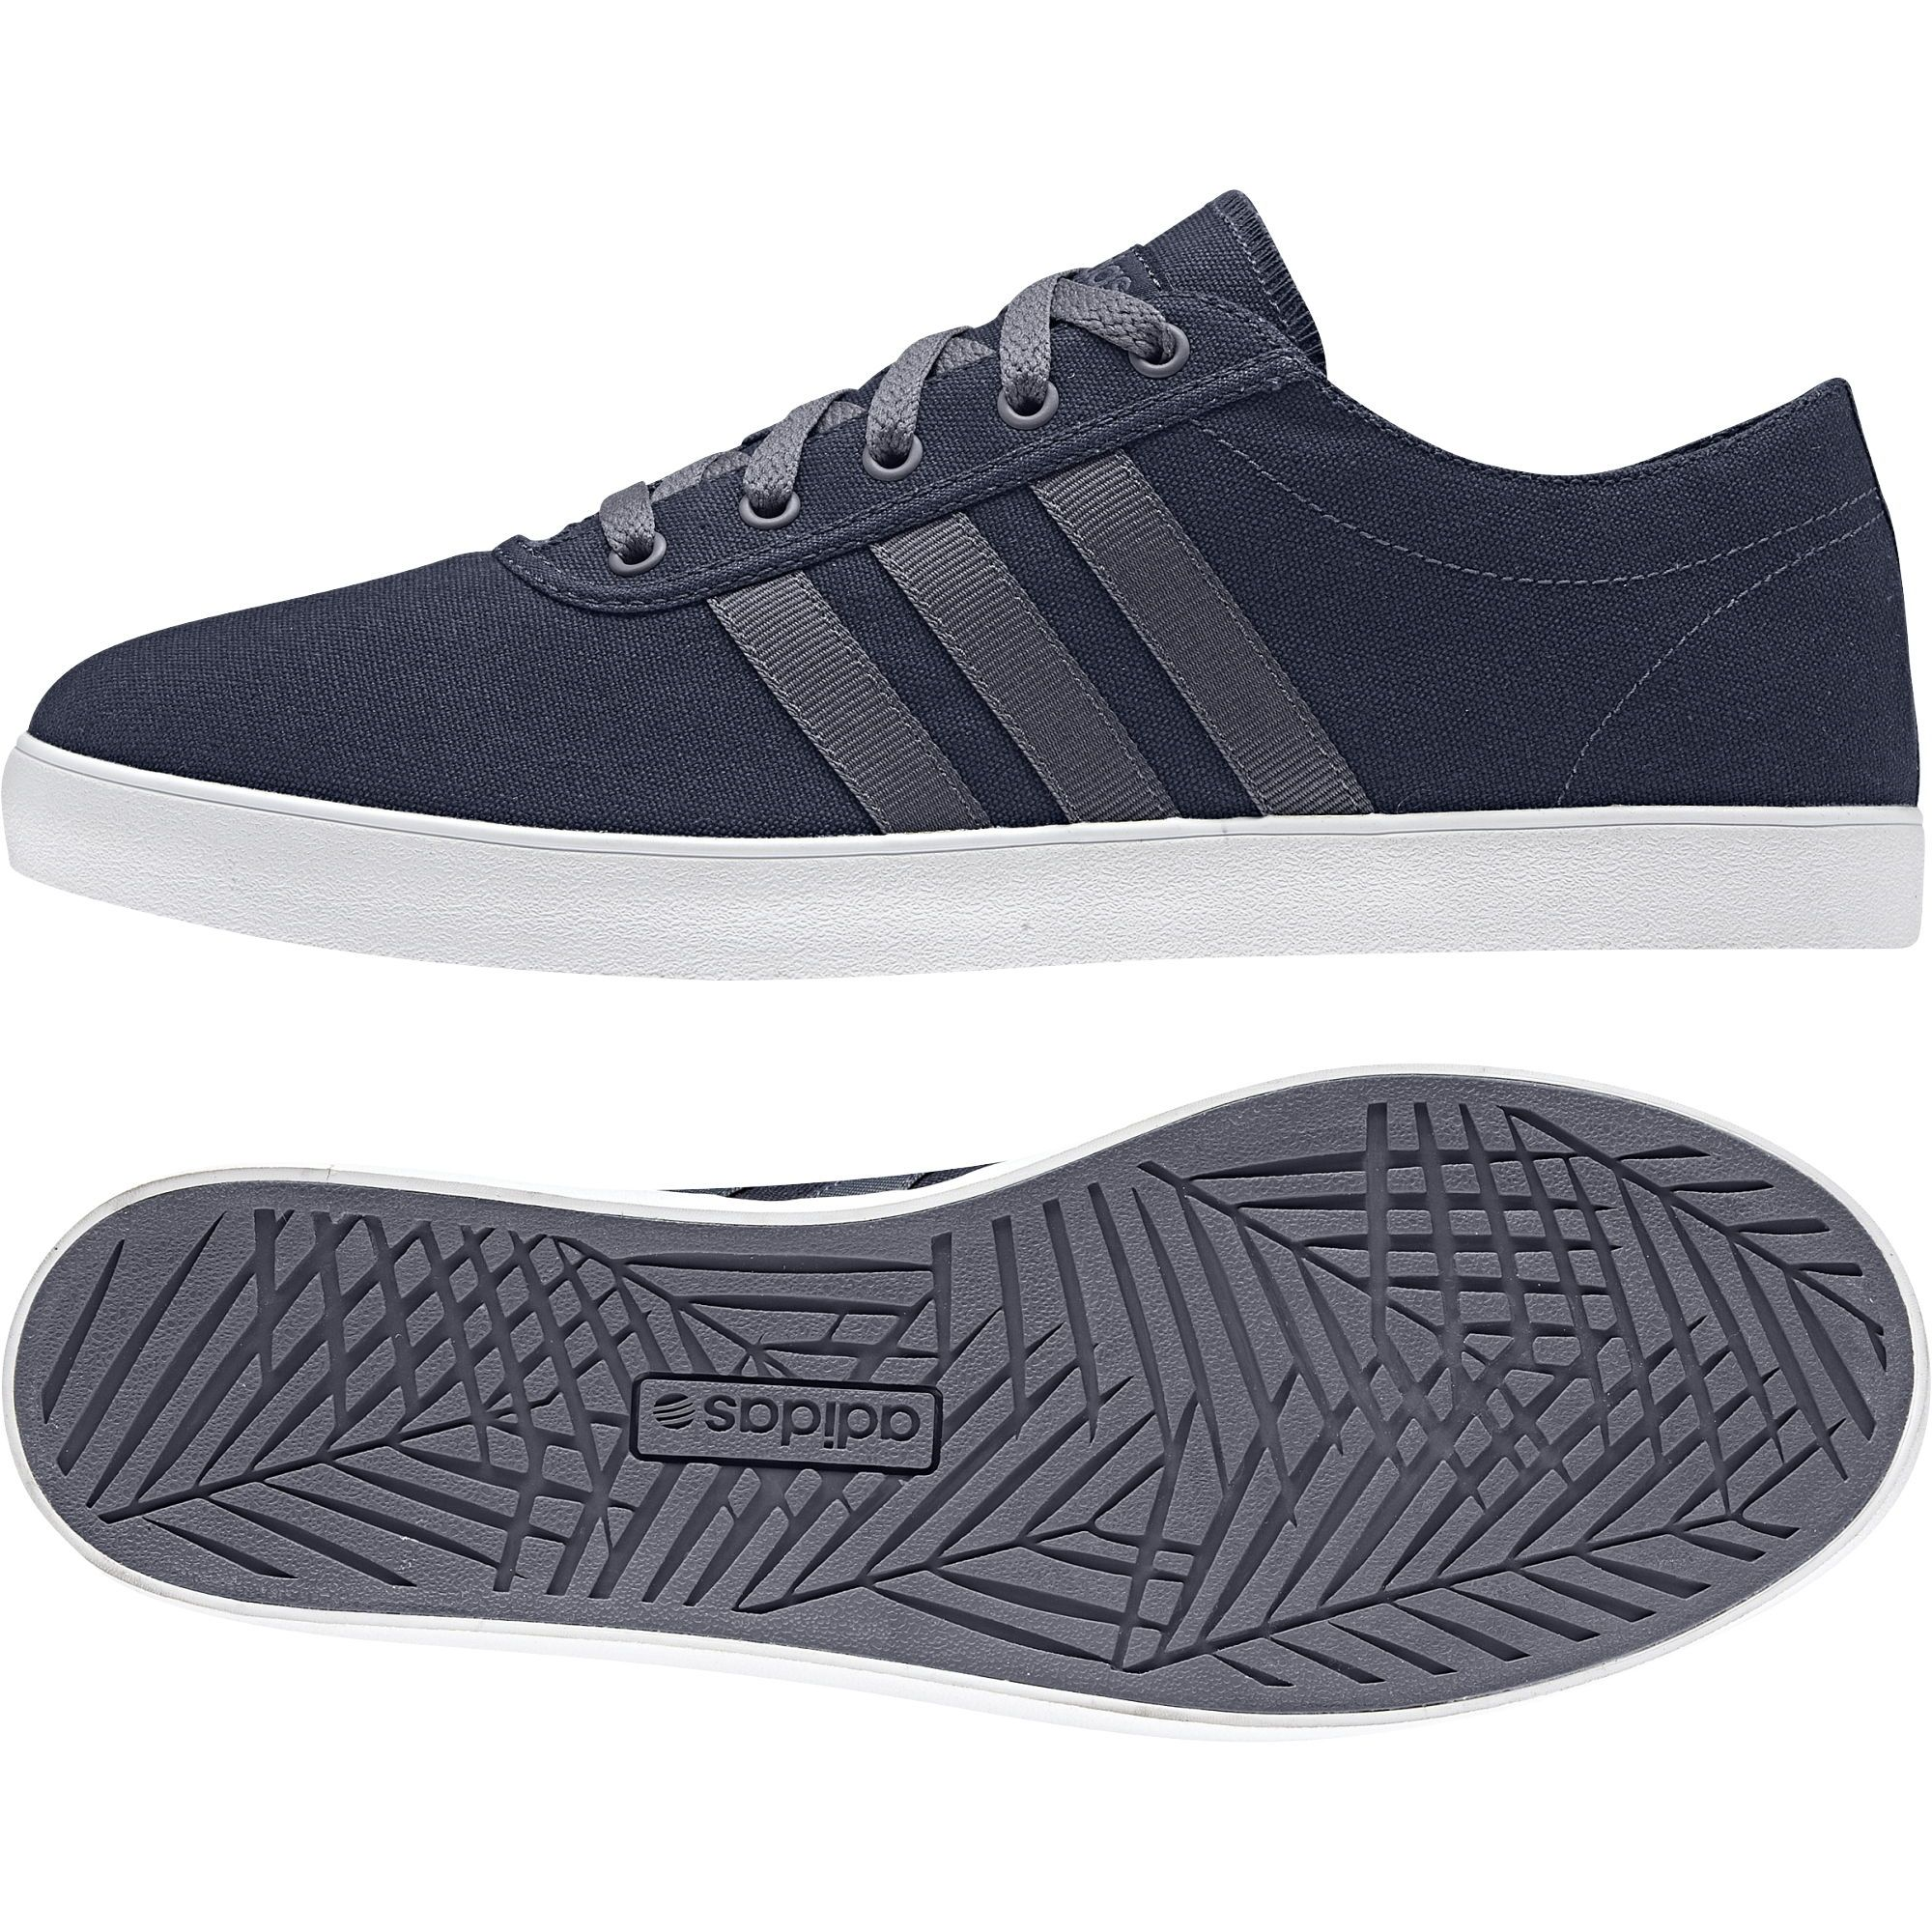 NEO Easy Vulc Shoes | ClothesAccessories | Adidas official